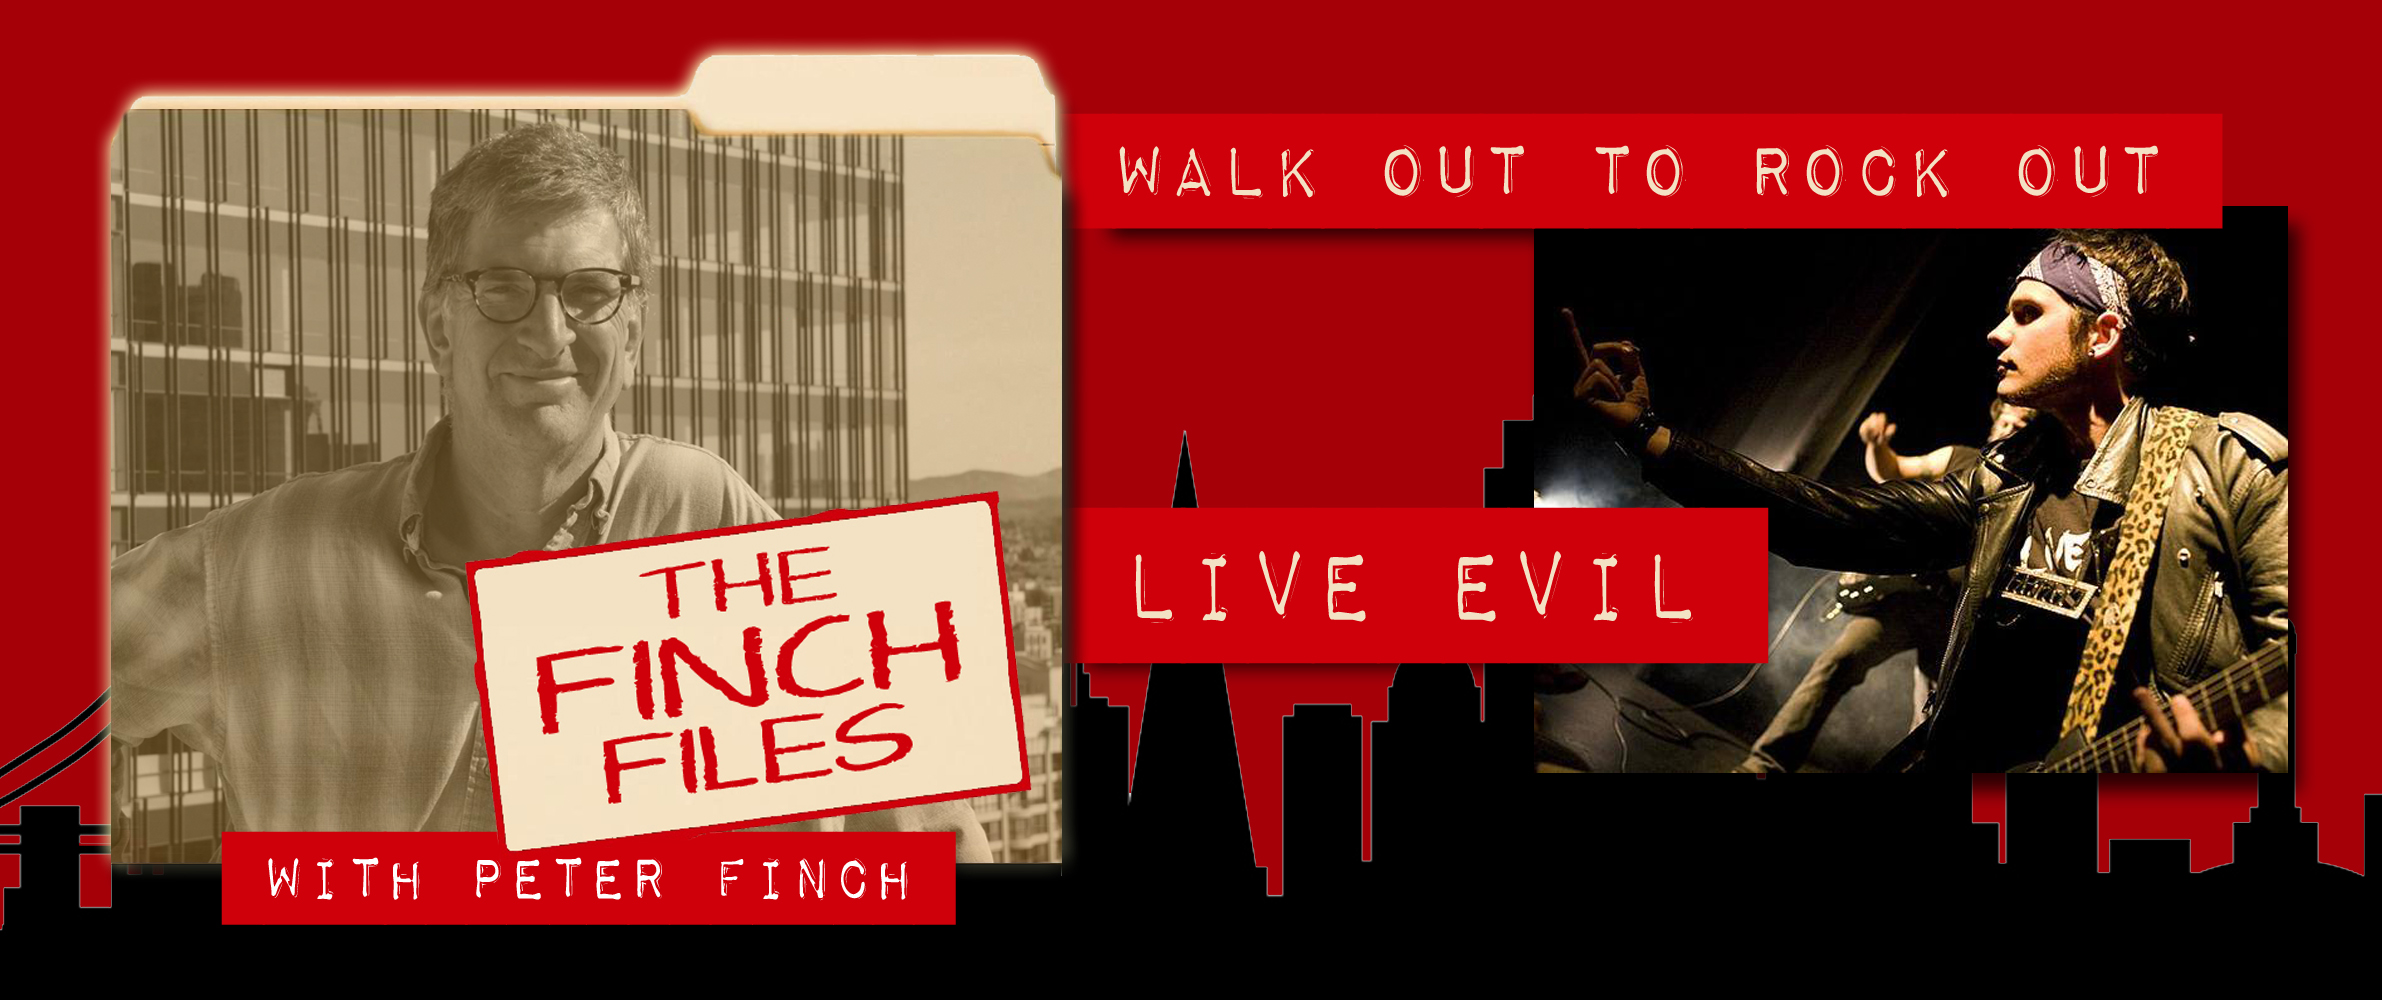 The Finch Files: Walk Out to Rock Out